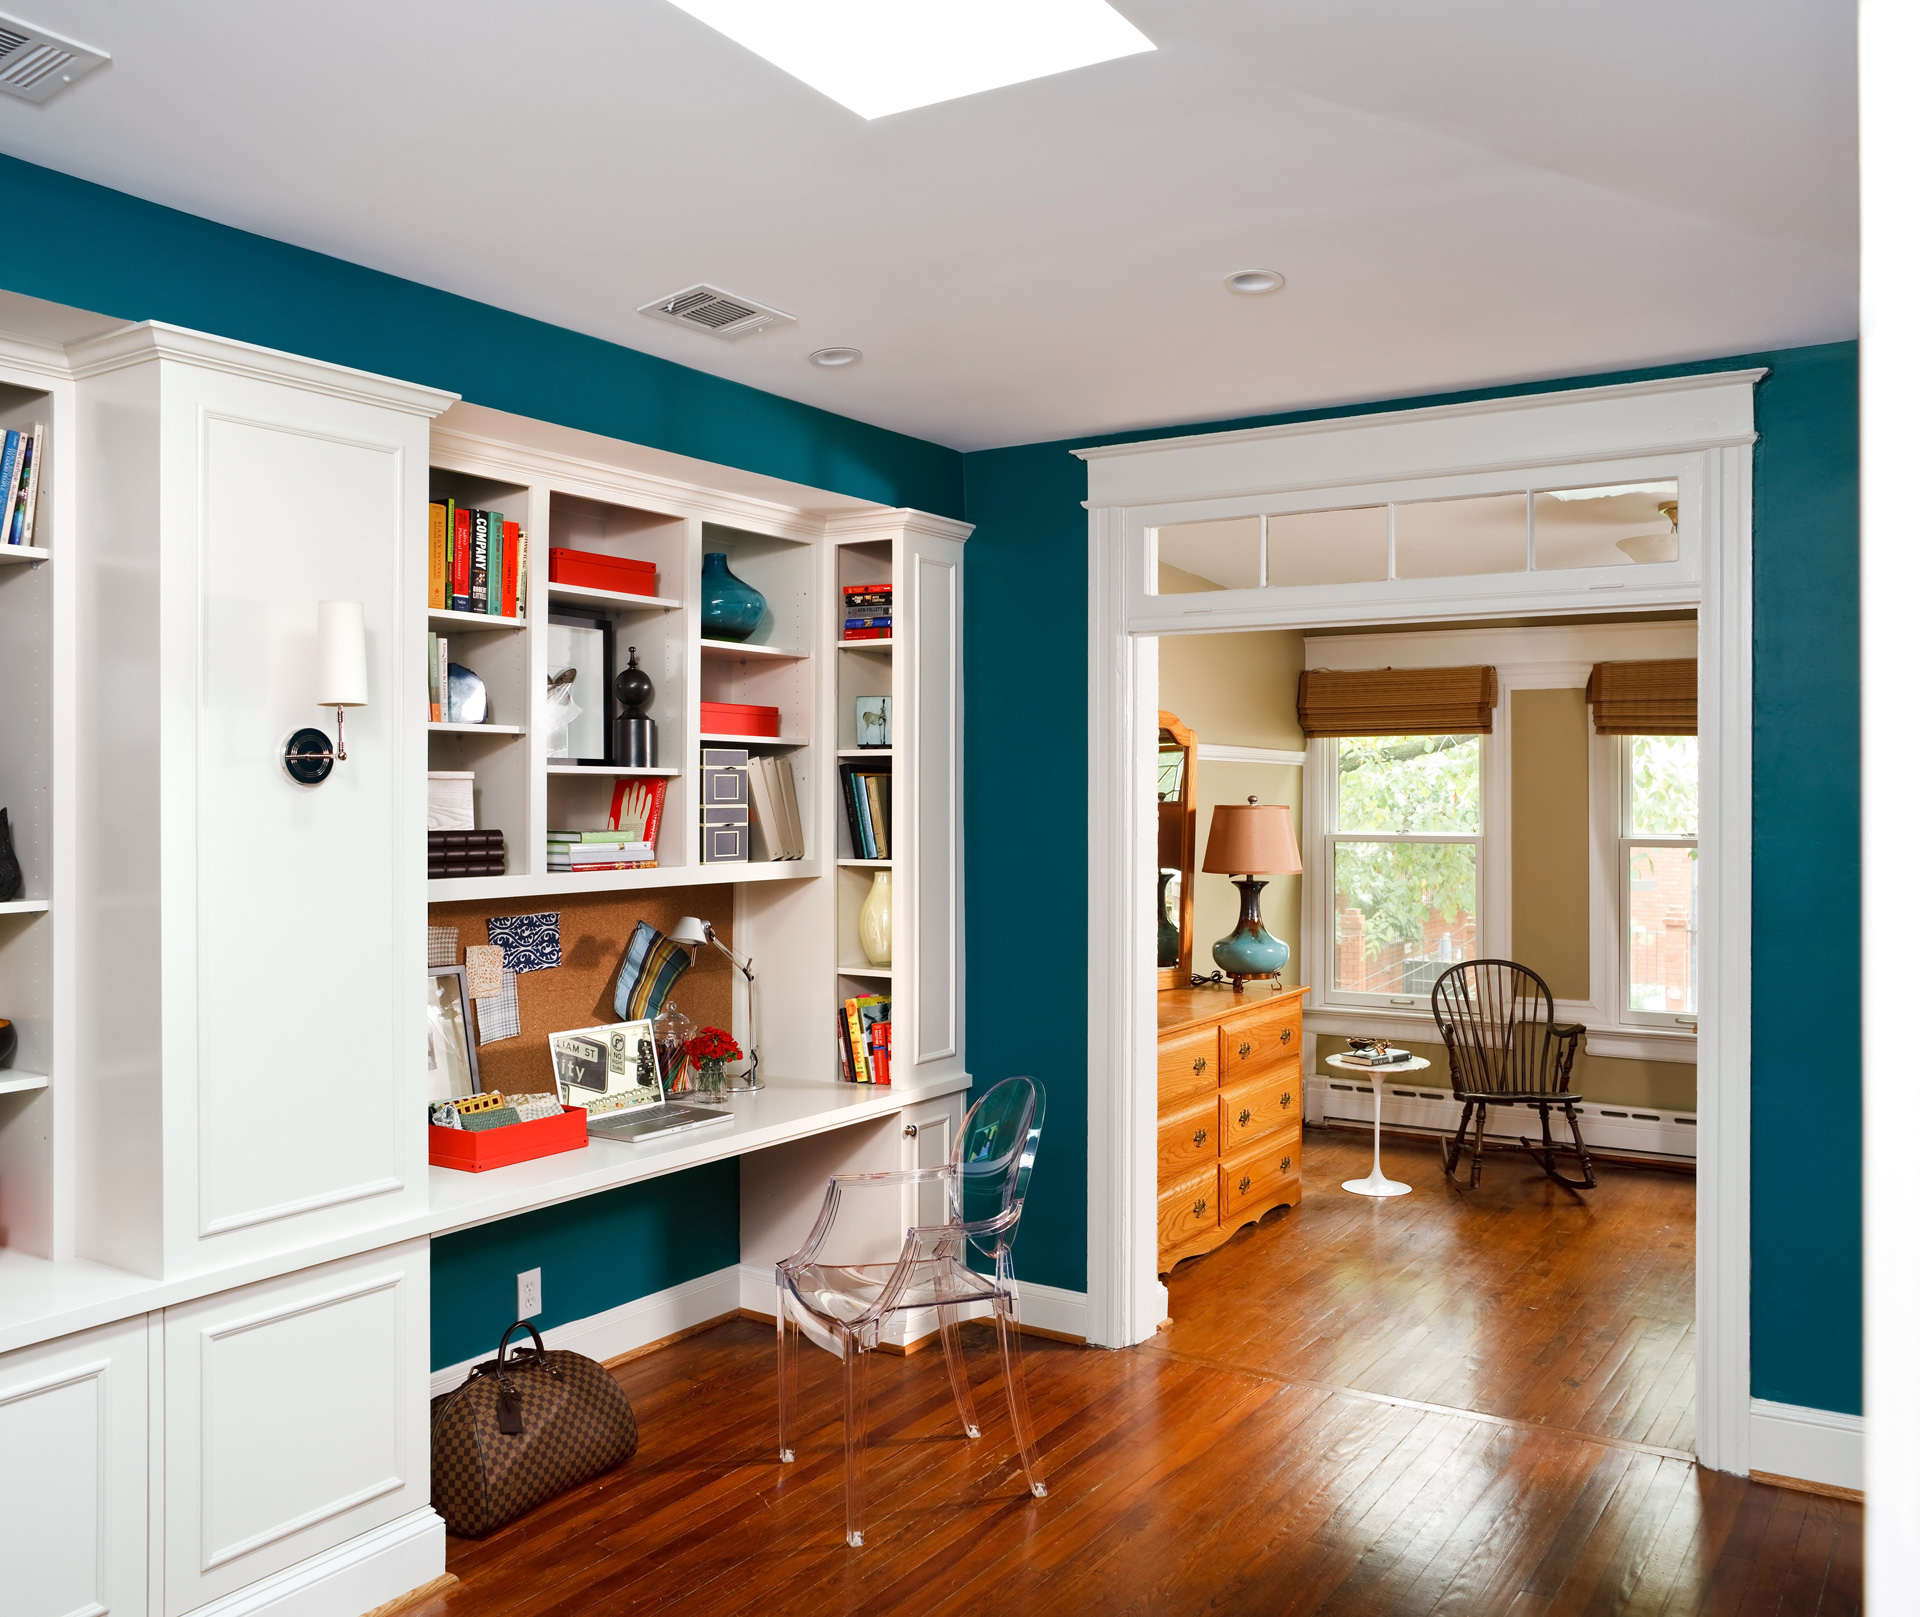 Let your book shelving do the decorating